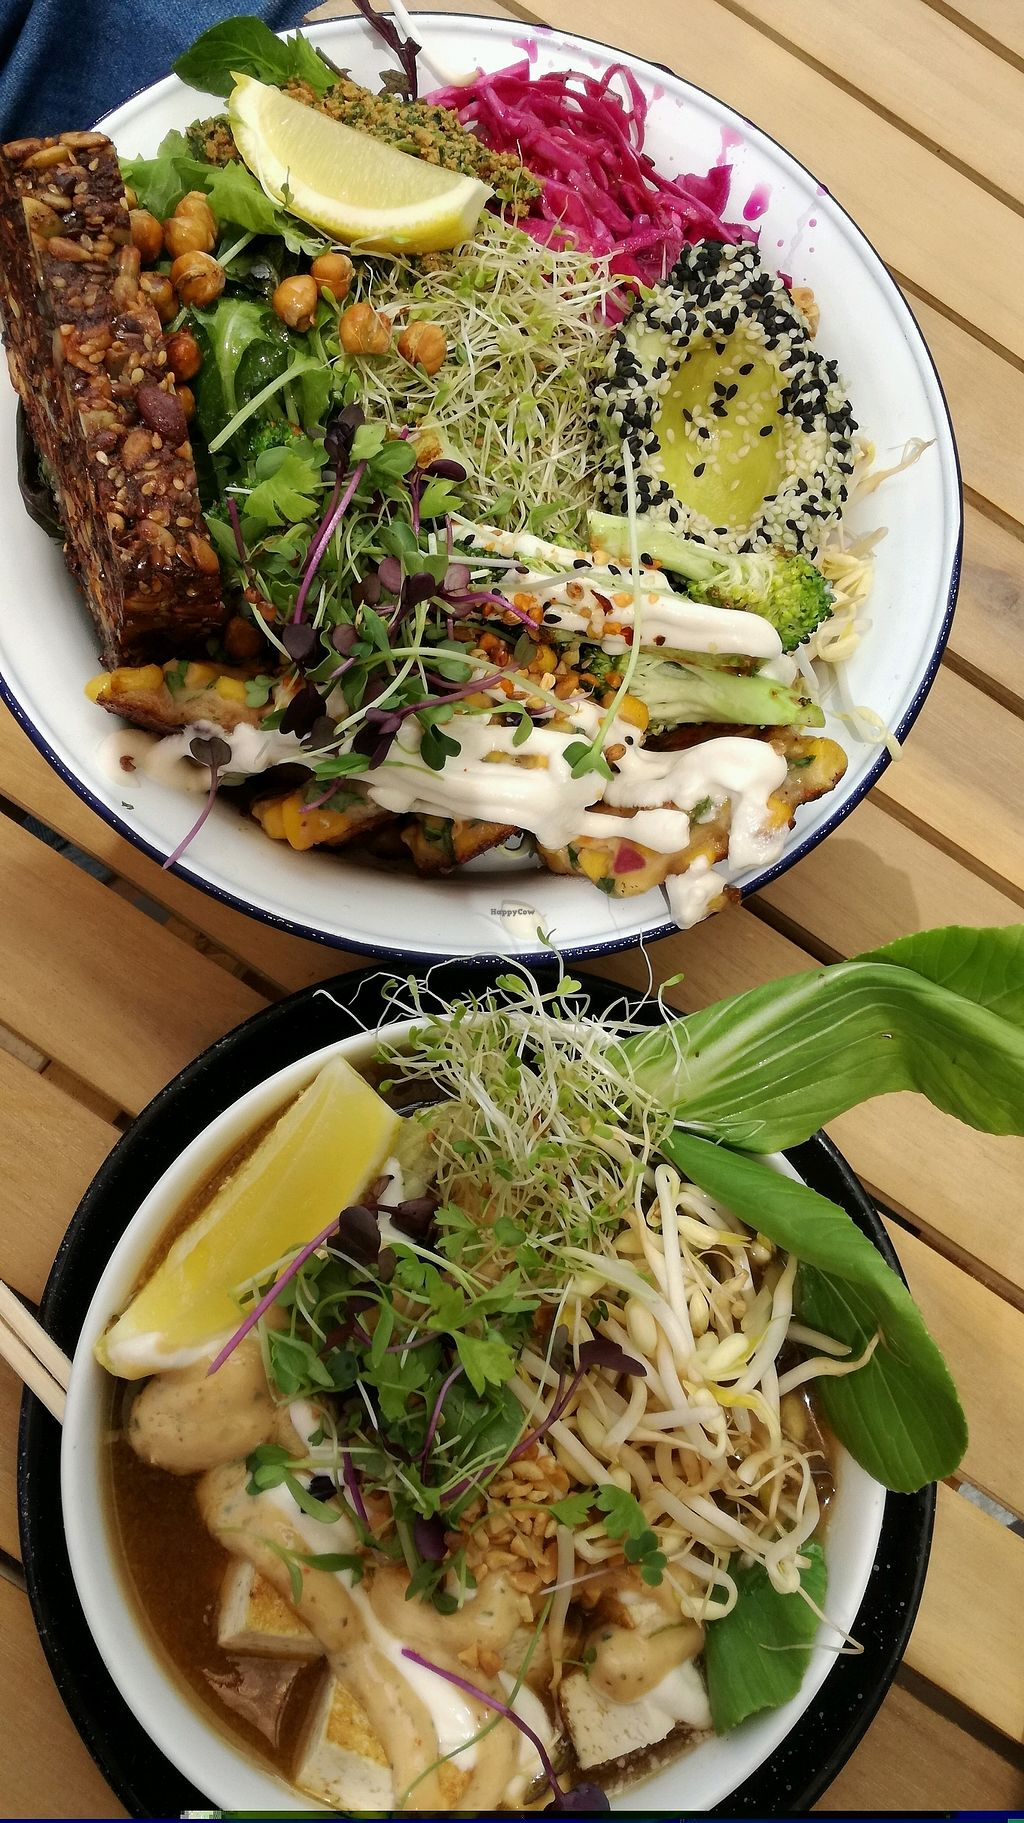 """Photo of Wild One Wholefoods Eatery   by <a href=""""/members/profile/evajelen"""">evajelen</a> <br/>yummy lunch  <br/> January 19, 2018  - <a href='/contact/abuse/image/78133/348197'>Report</a>"""